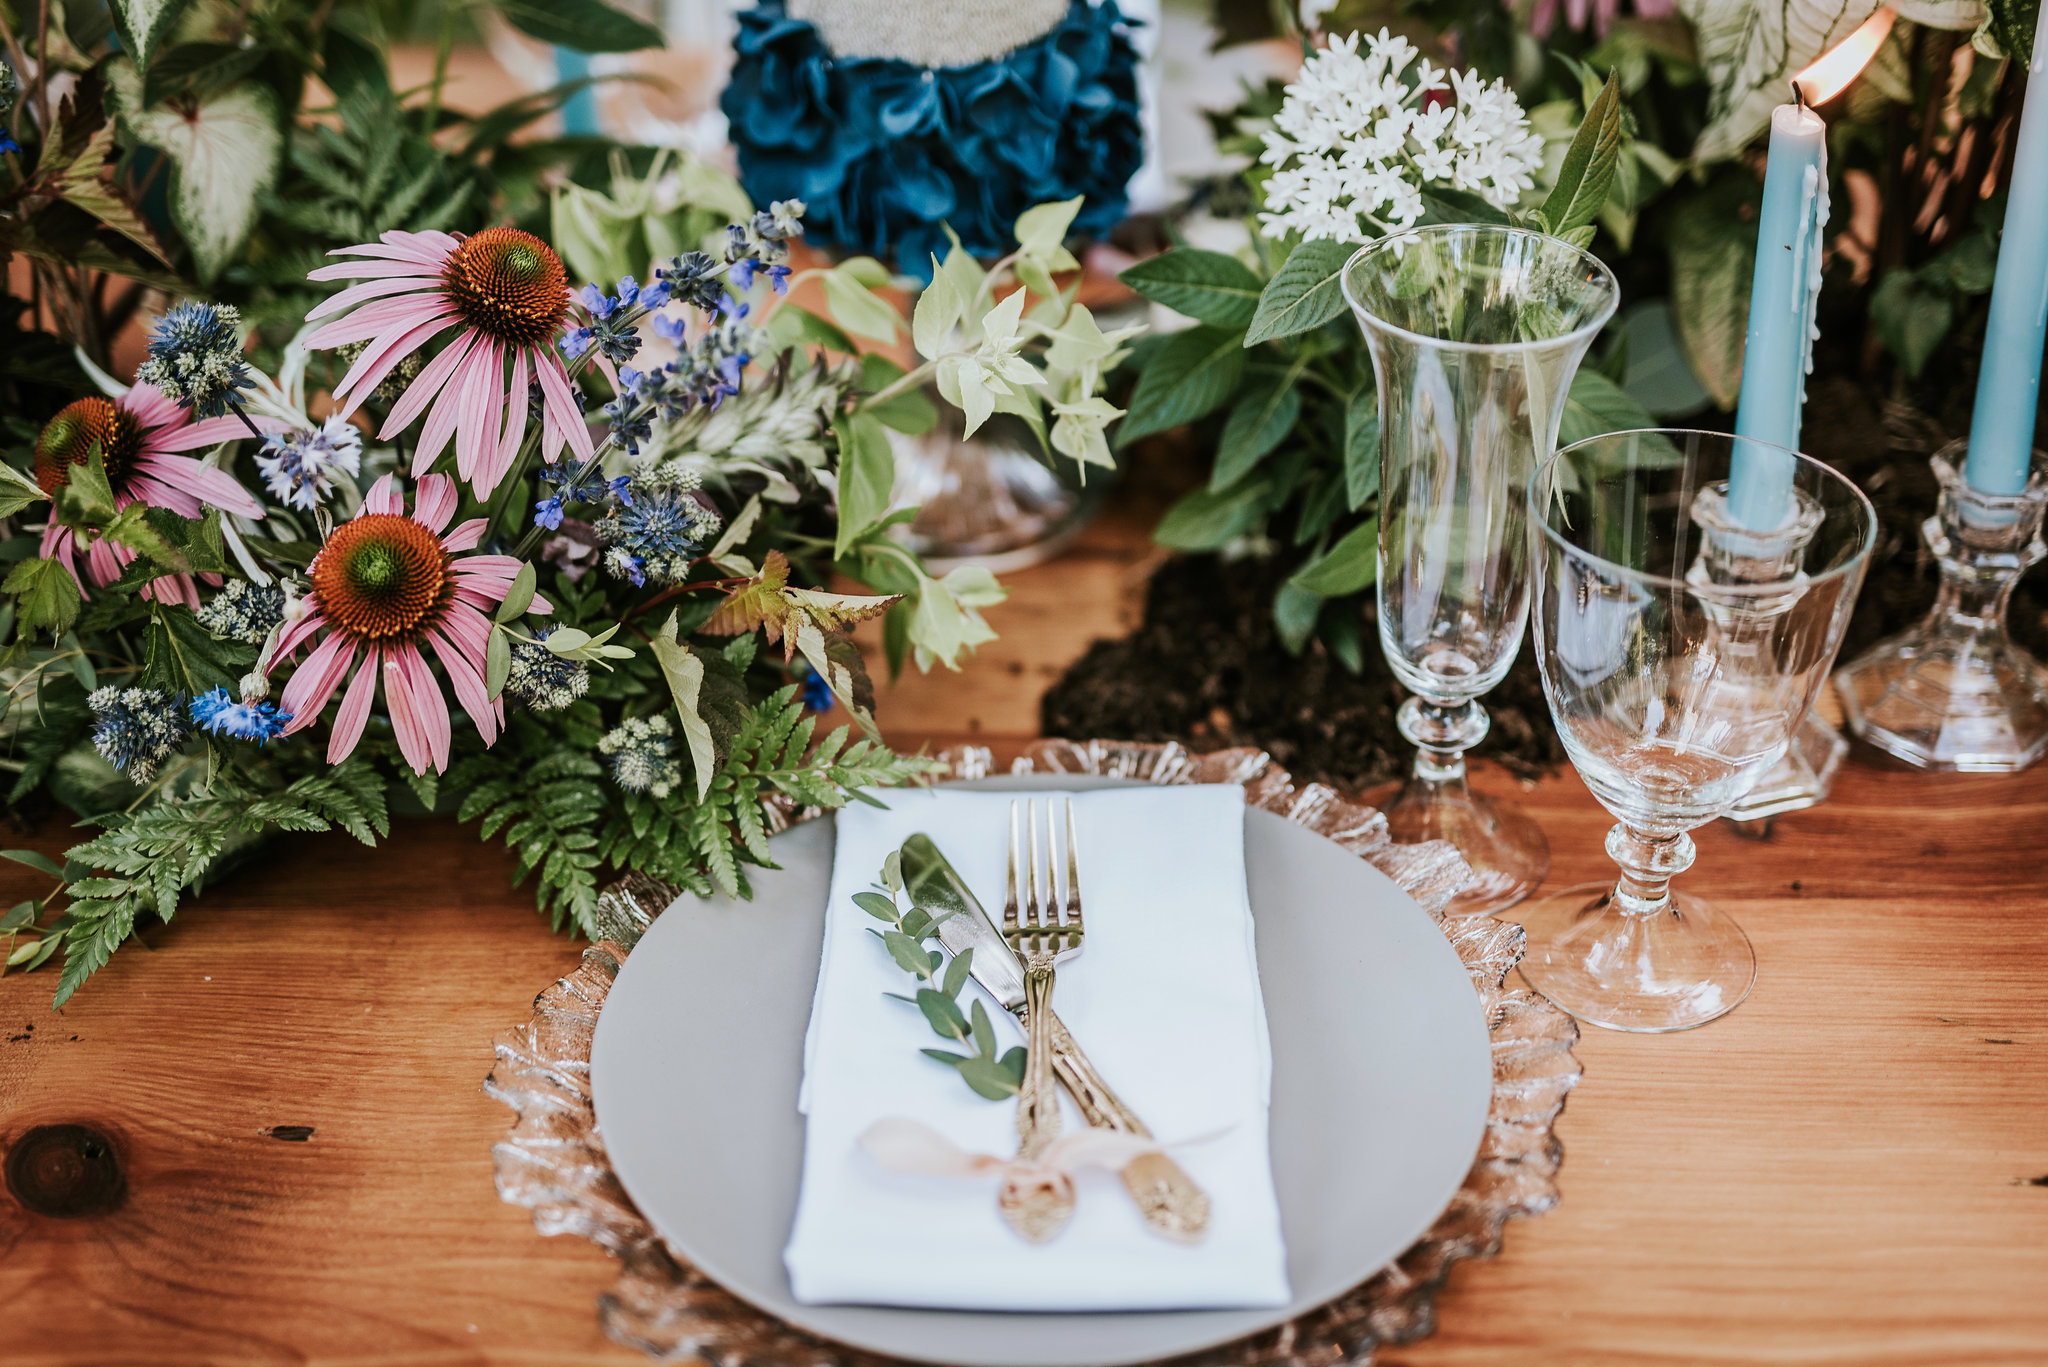 Image by  M2 Photography  * Floral by  Belovely  * Table Setting by  Party Rental LTD